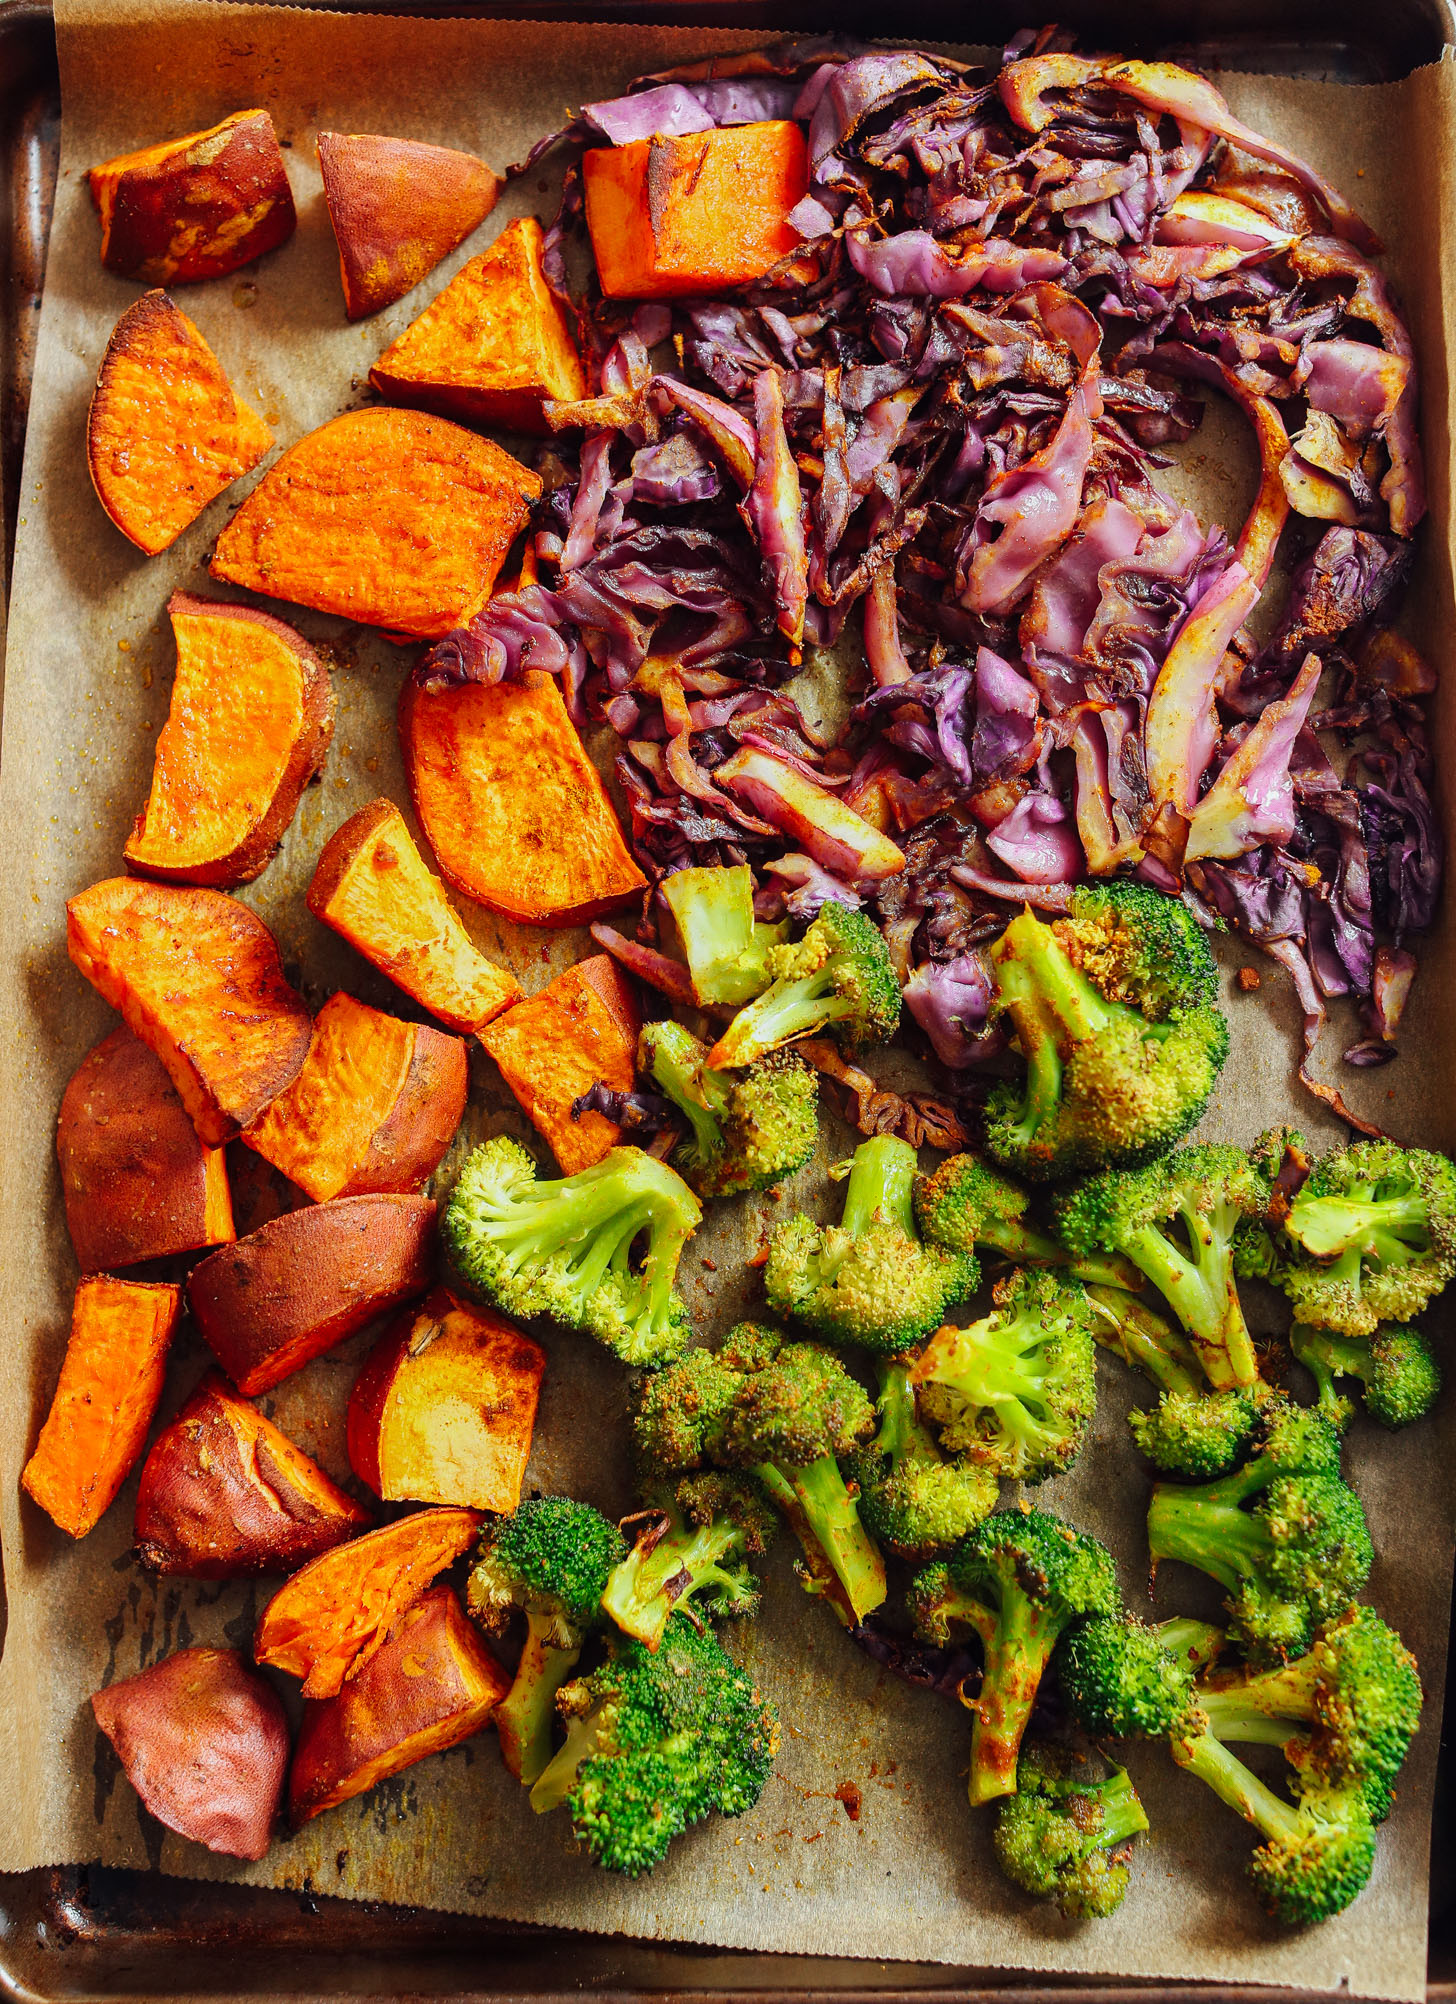 Freshly roasted sweet potatoes, broccoli, and cabbage on a parchment-lined baking sheet